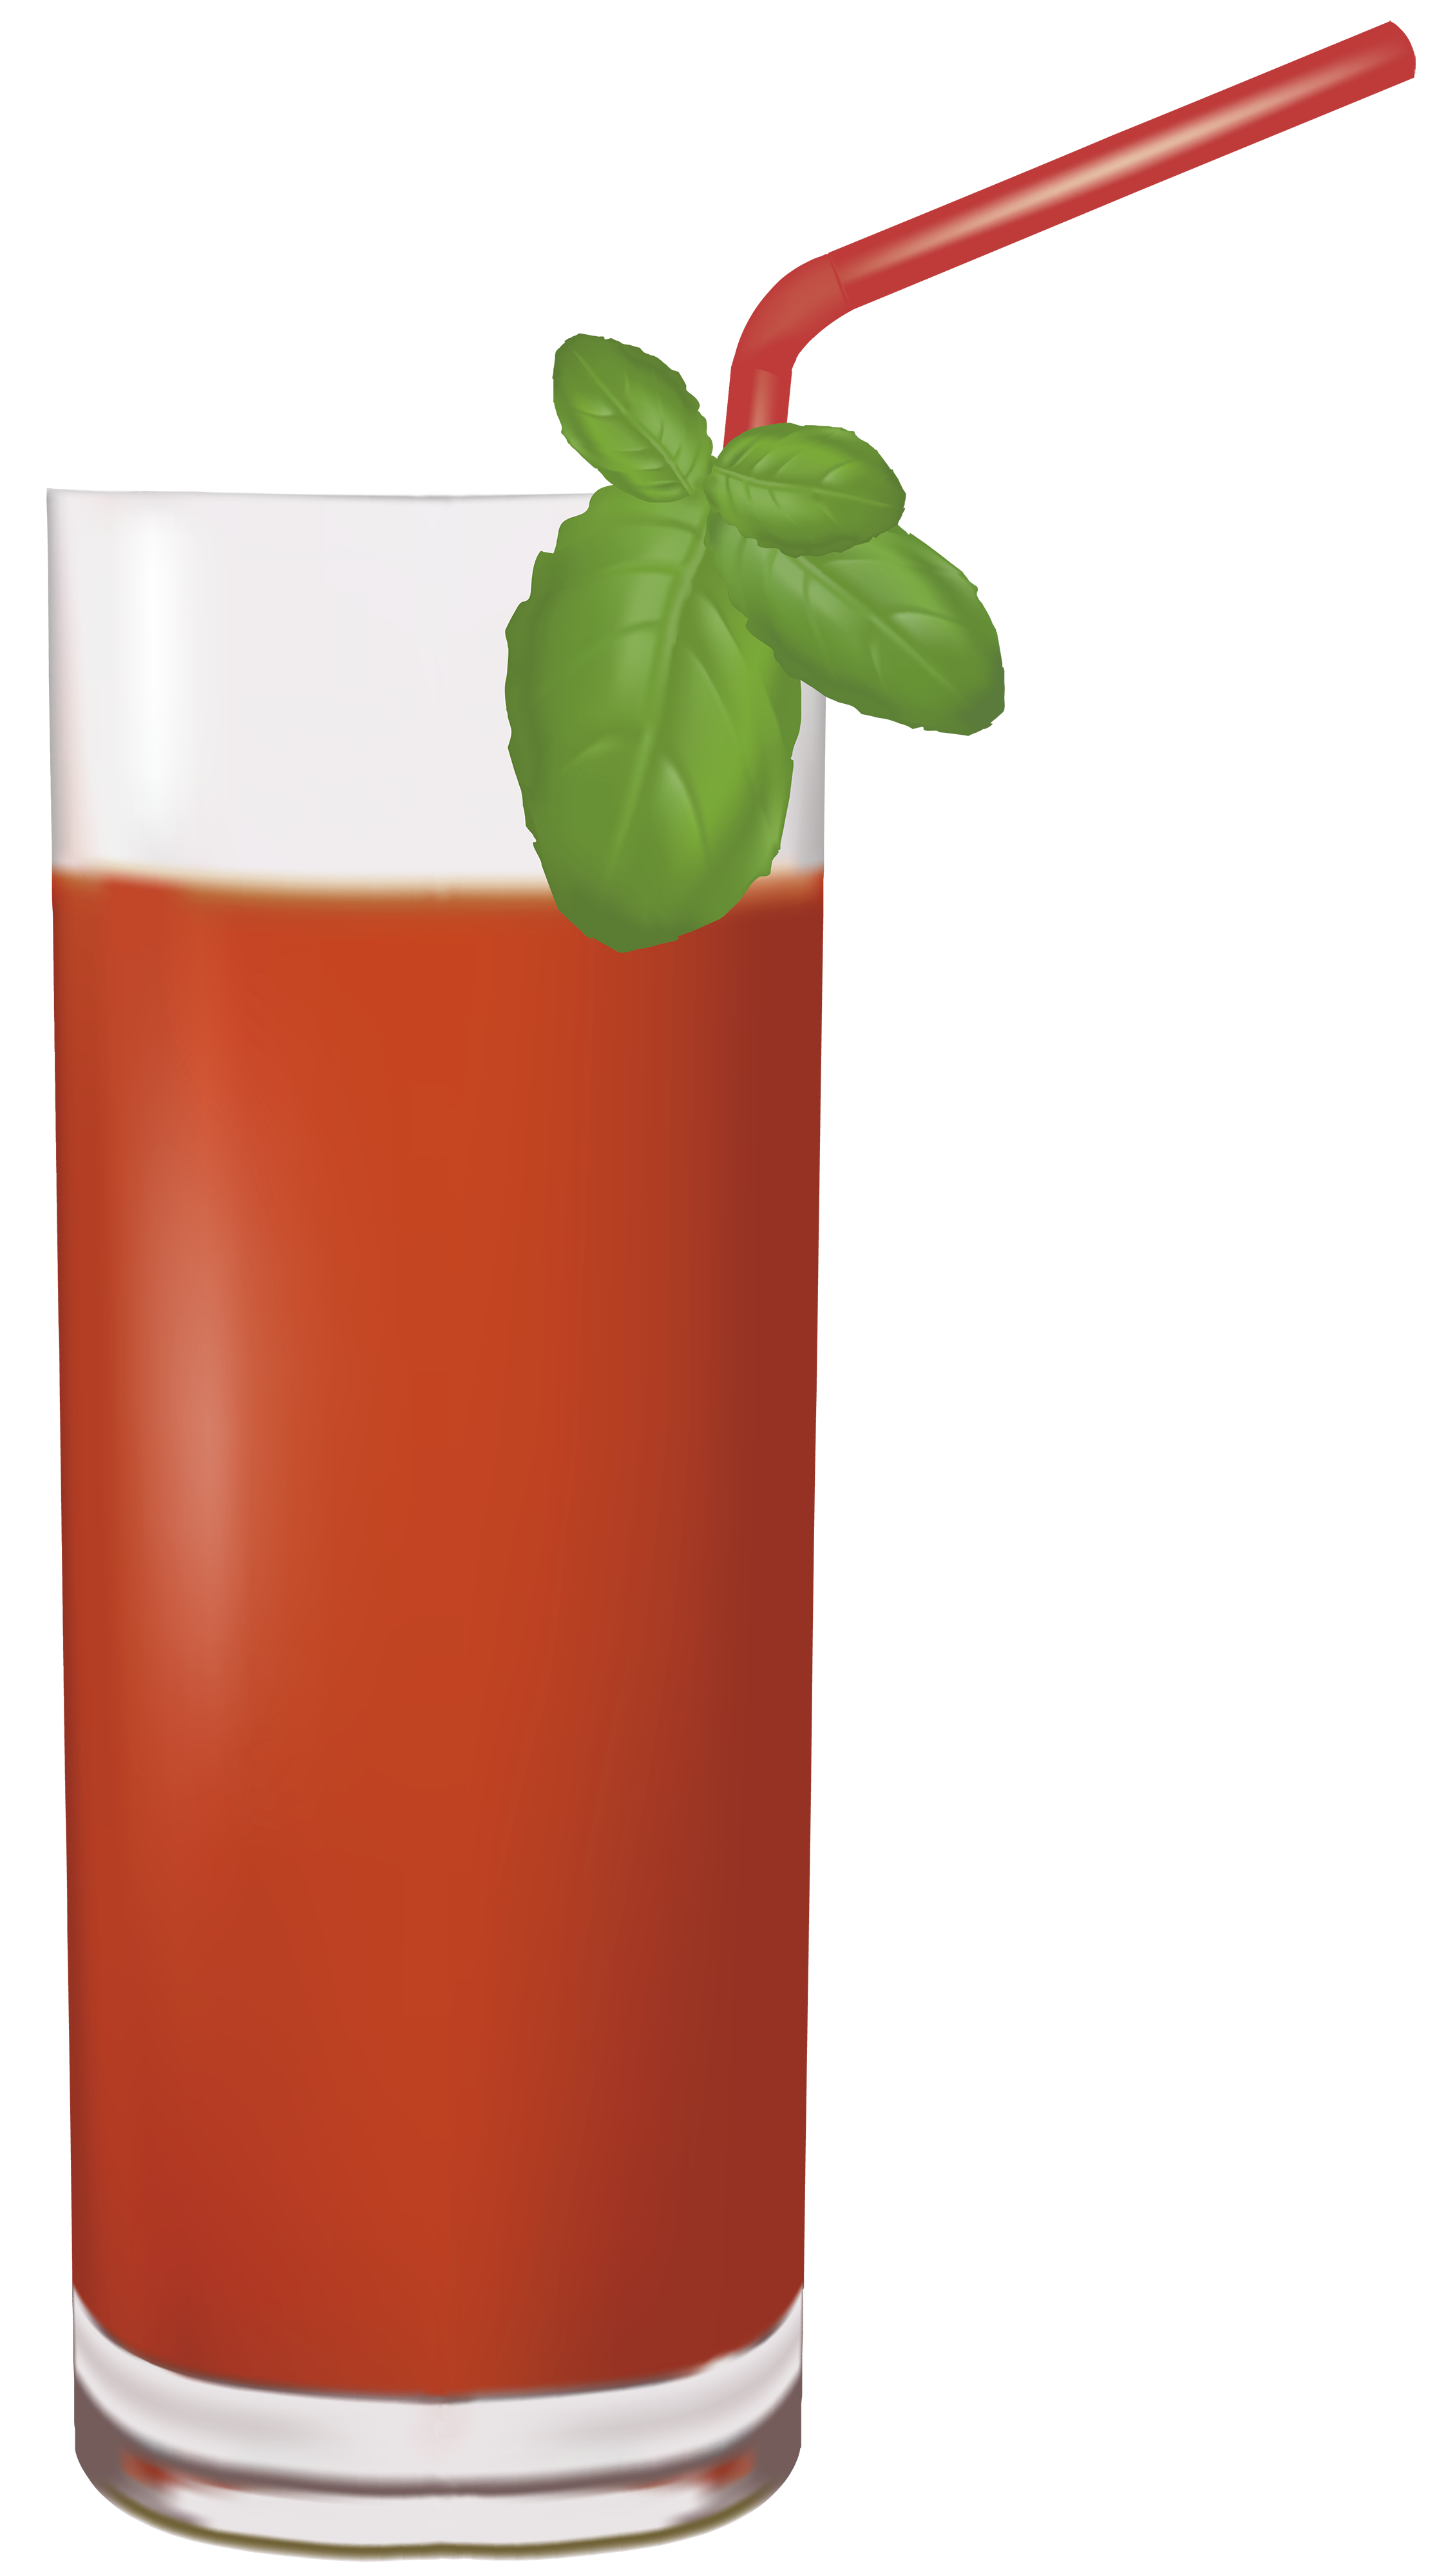 Cocktail clipart juice. Bloody mary png best